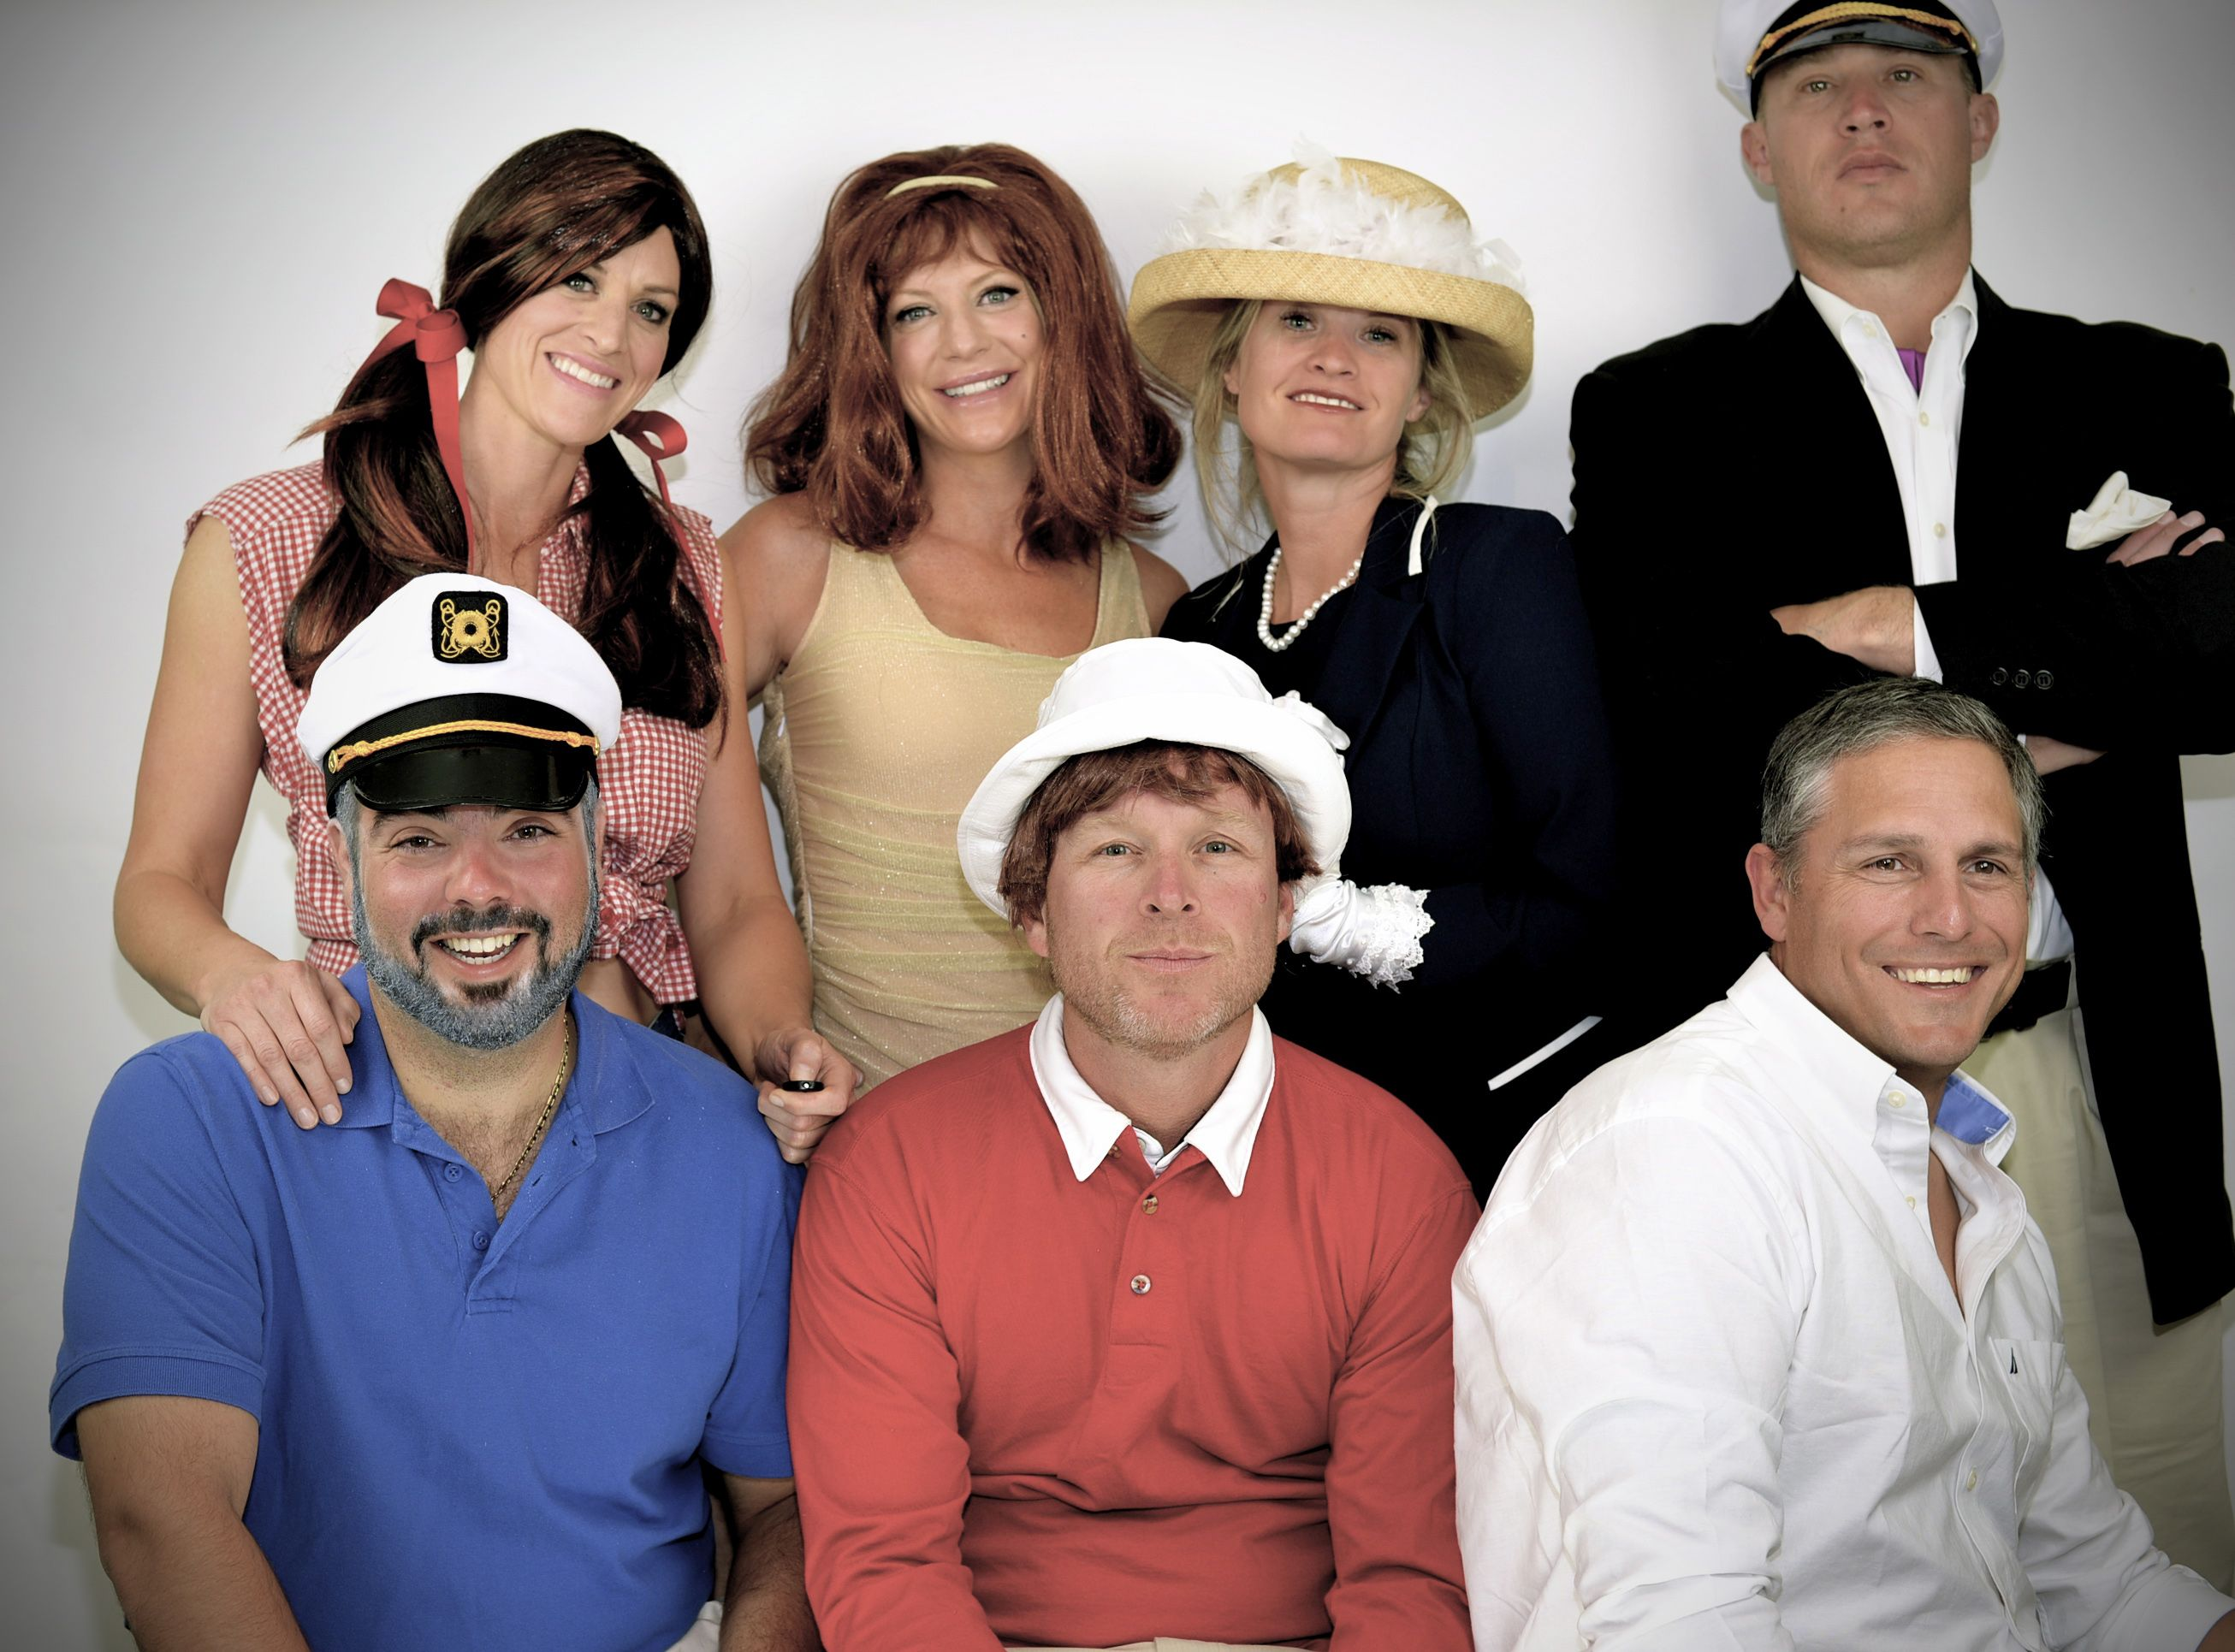 halloween costumes ginger the skipper source gilligans island halloween costume ideas halloween